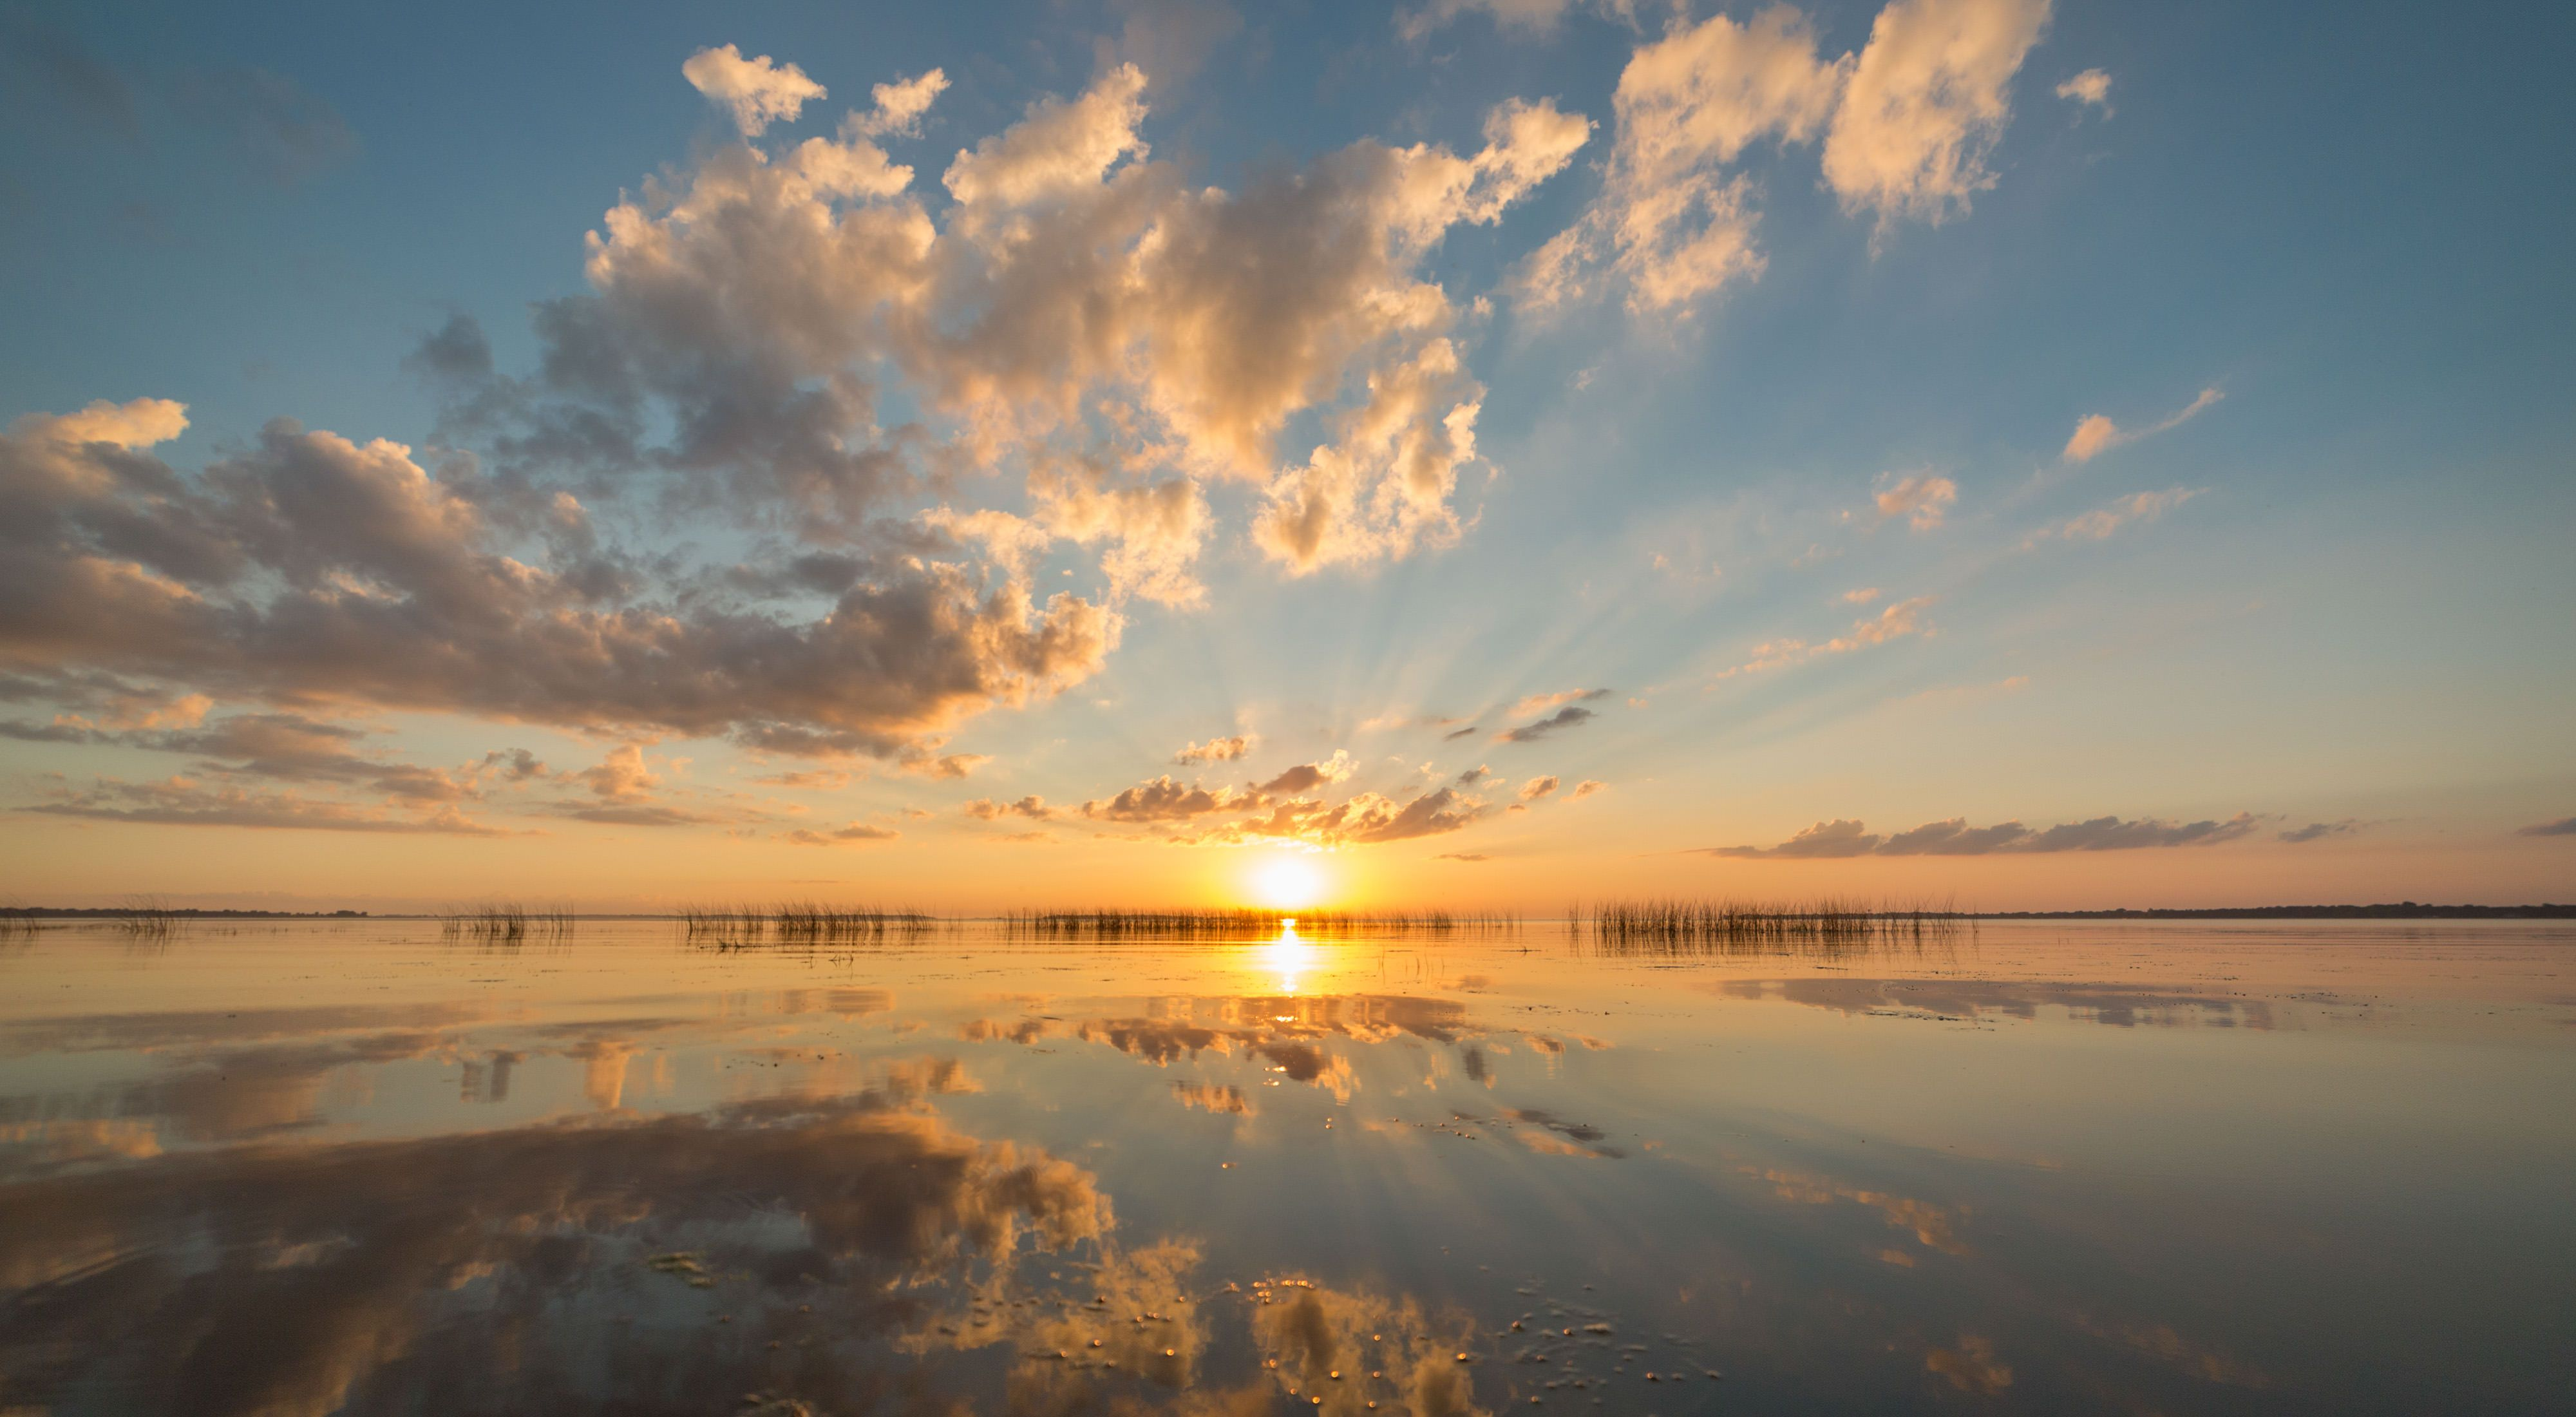 Saginaw Bay is one of the world's largest contiguous coastal wetland systems, supporting a robust wildlife fishery, habitat for migratory birds, and water-based recreation.